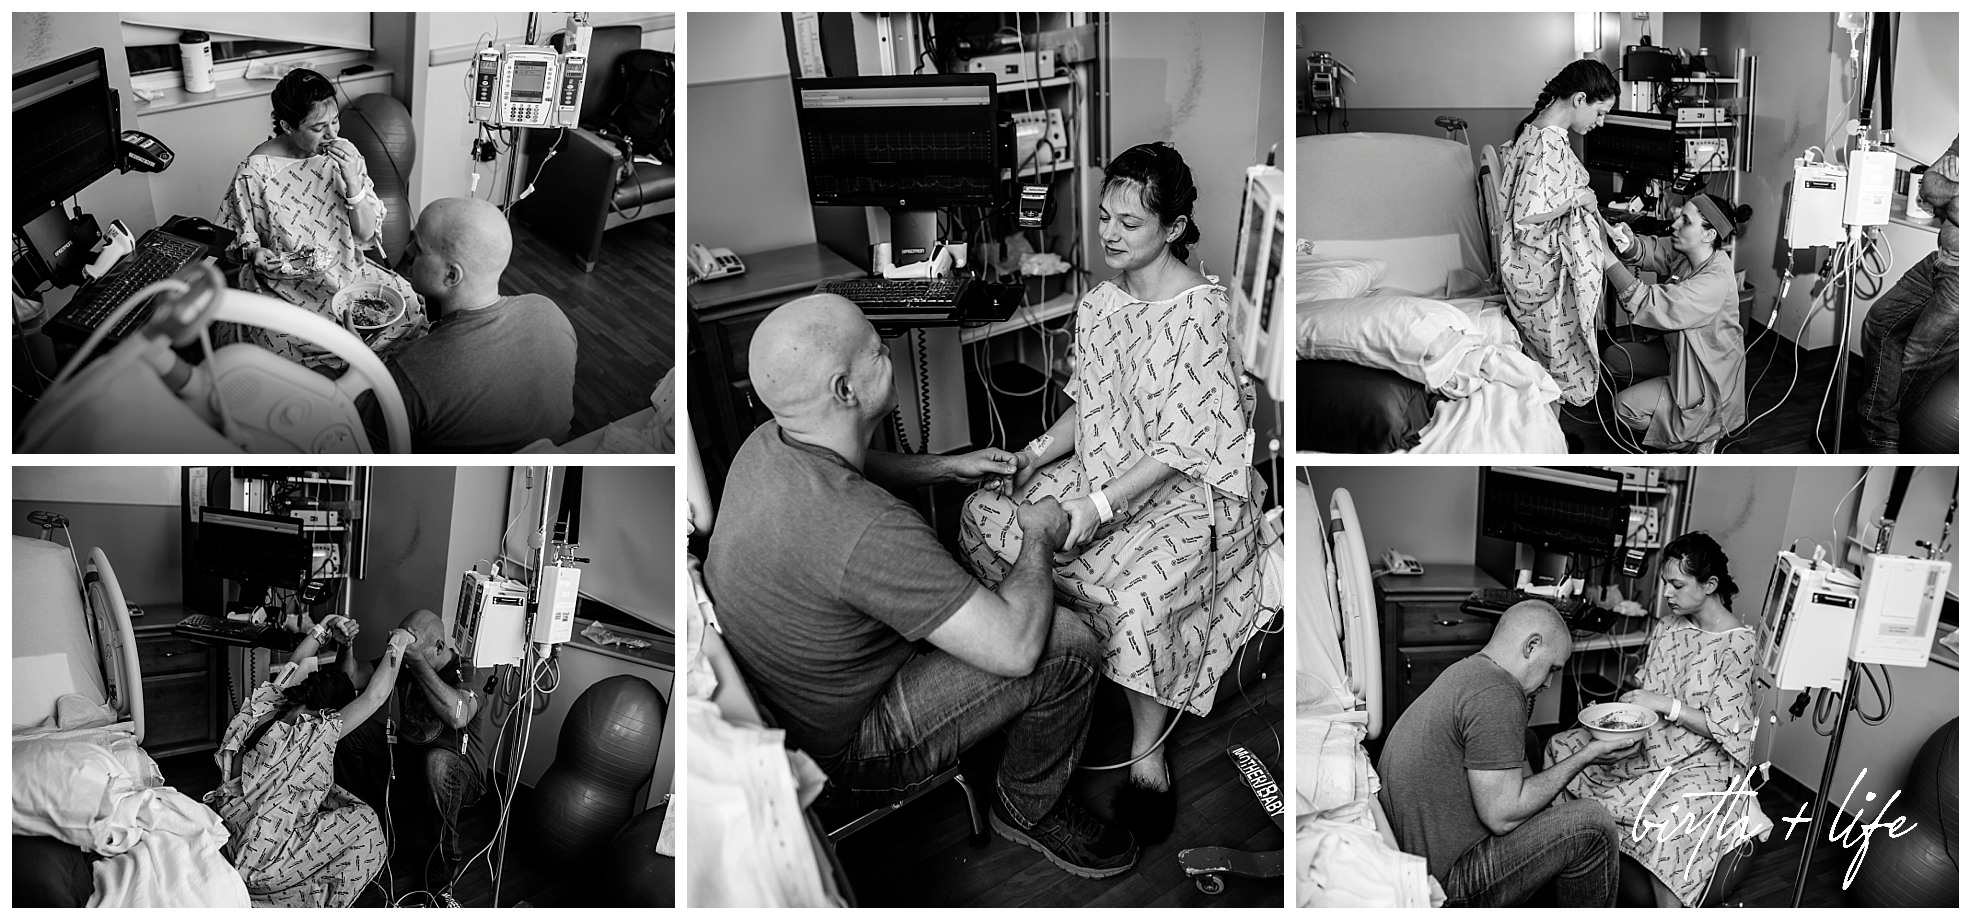 dfw-birth-and-life-photography-family-photojournalism-documentary-birth-storyacclaim-midwives-clark013.jpg